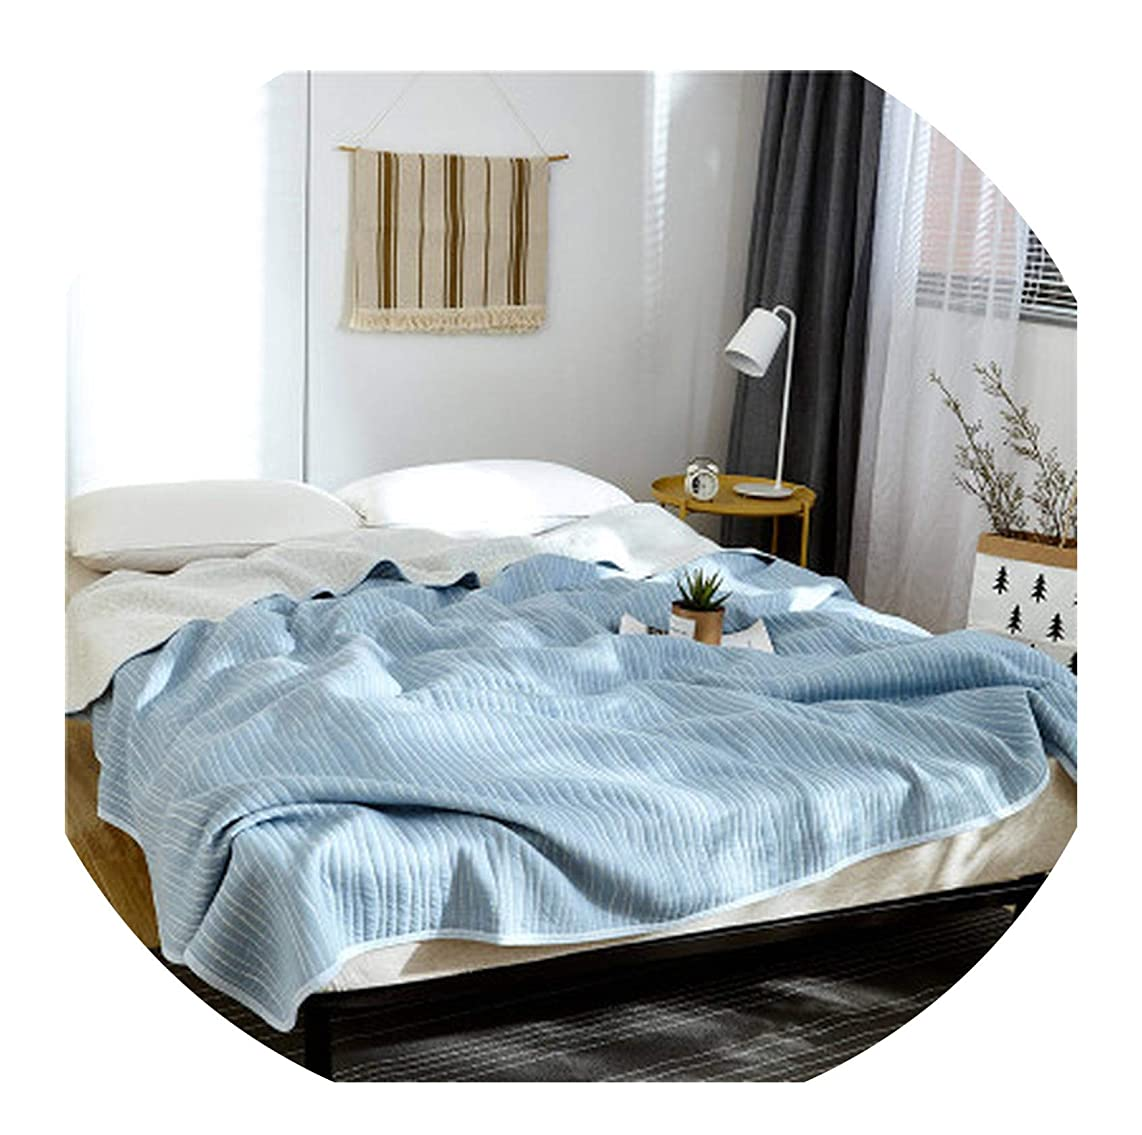 FAT BIG CAT Summer Cotton Air Conditioning Quilt Comforter Blanket Full Queen King Dotiki Throws Bedspread Plaids Patchwork Bed Covers,150X200cm,As Photos